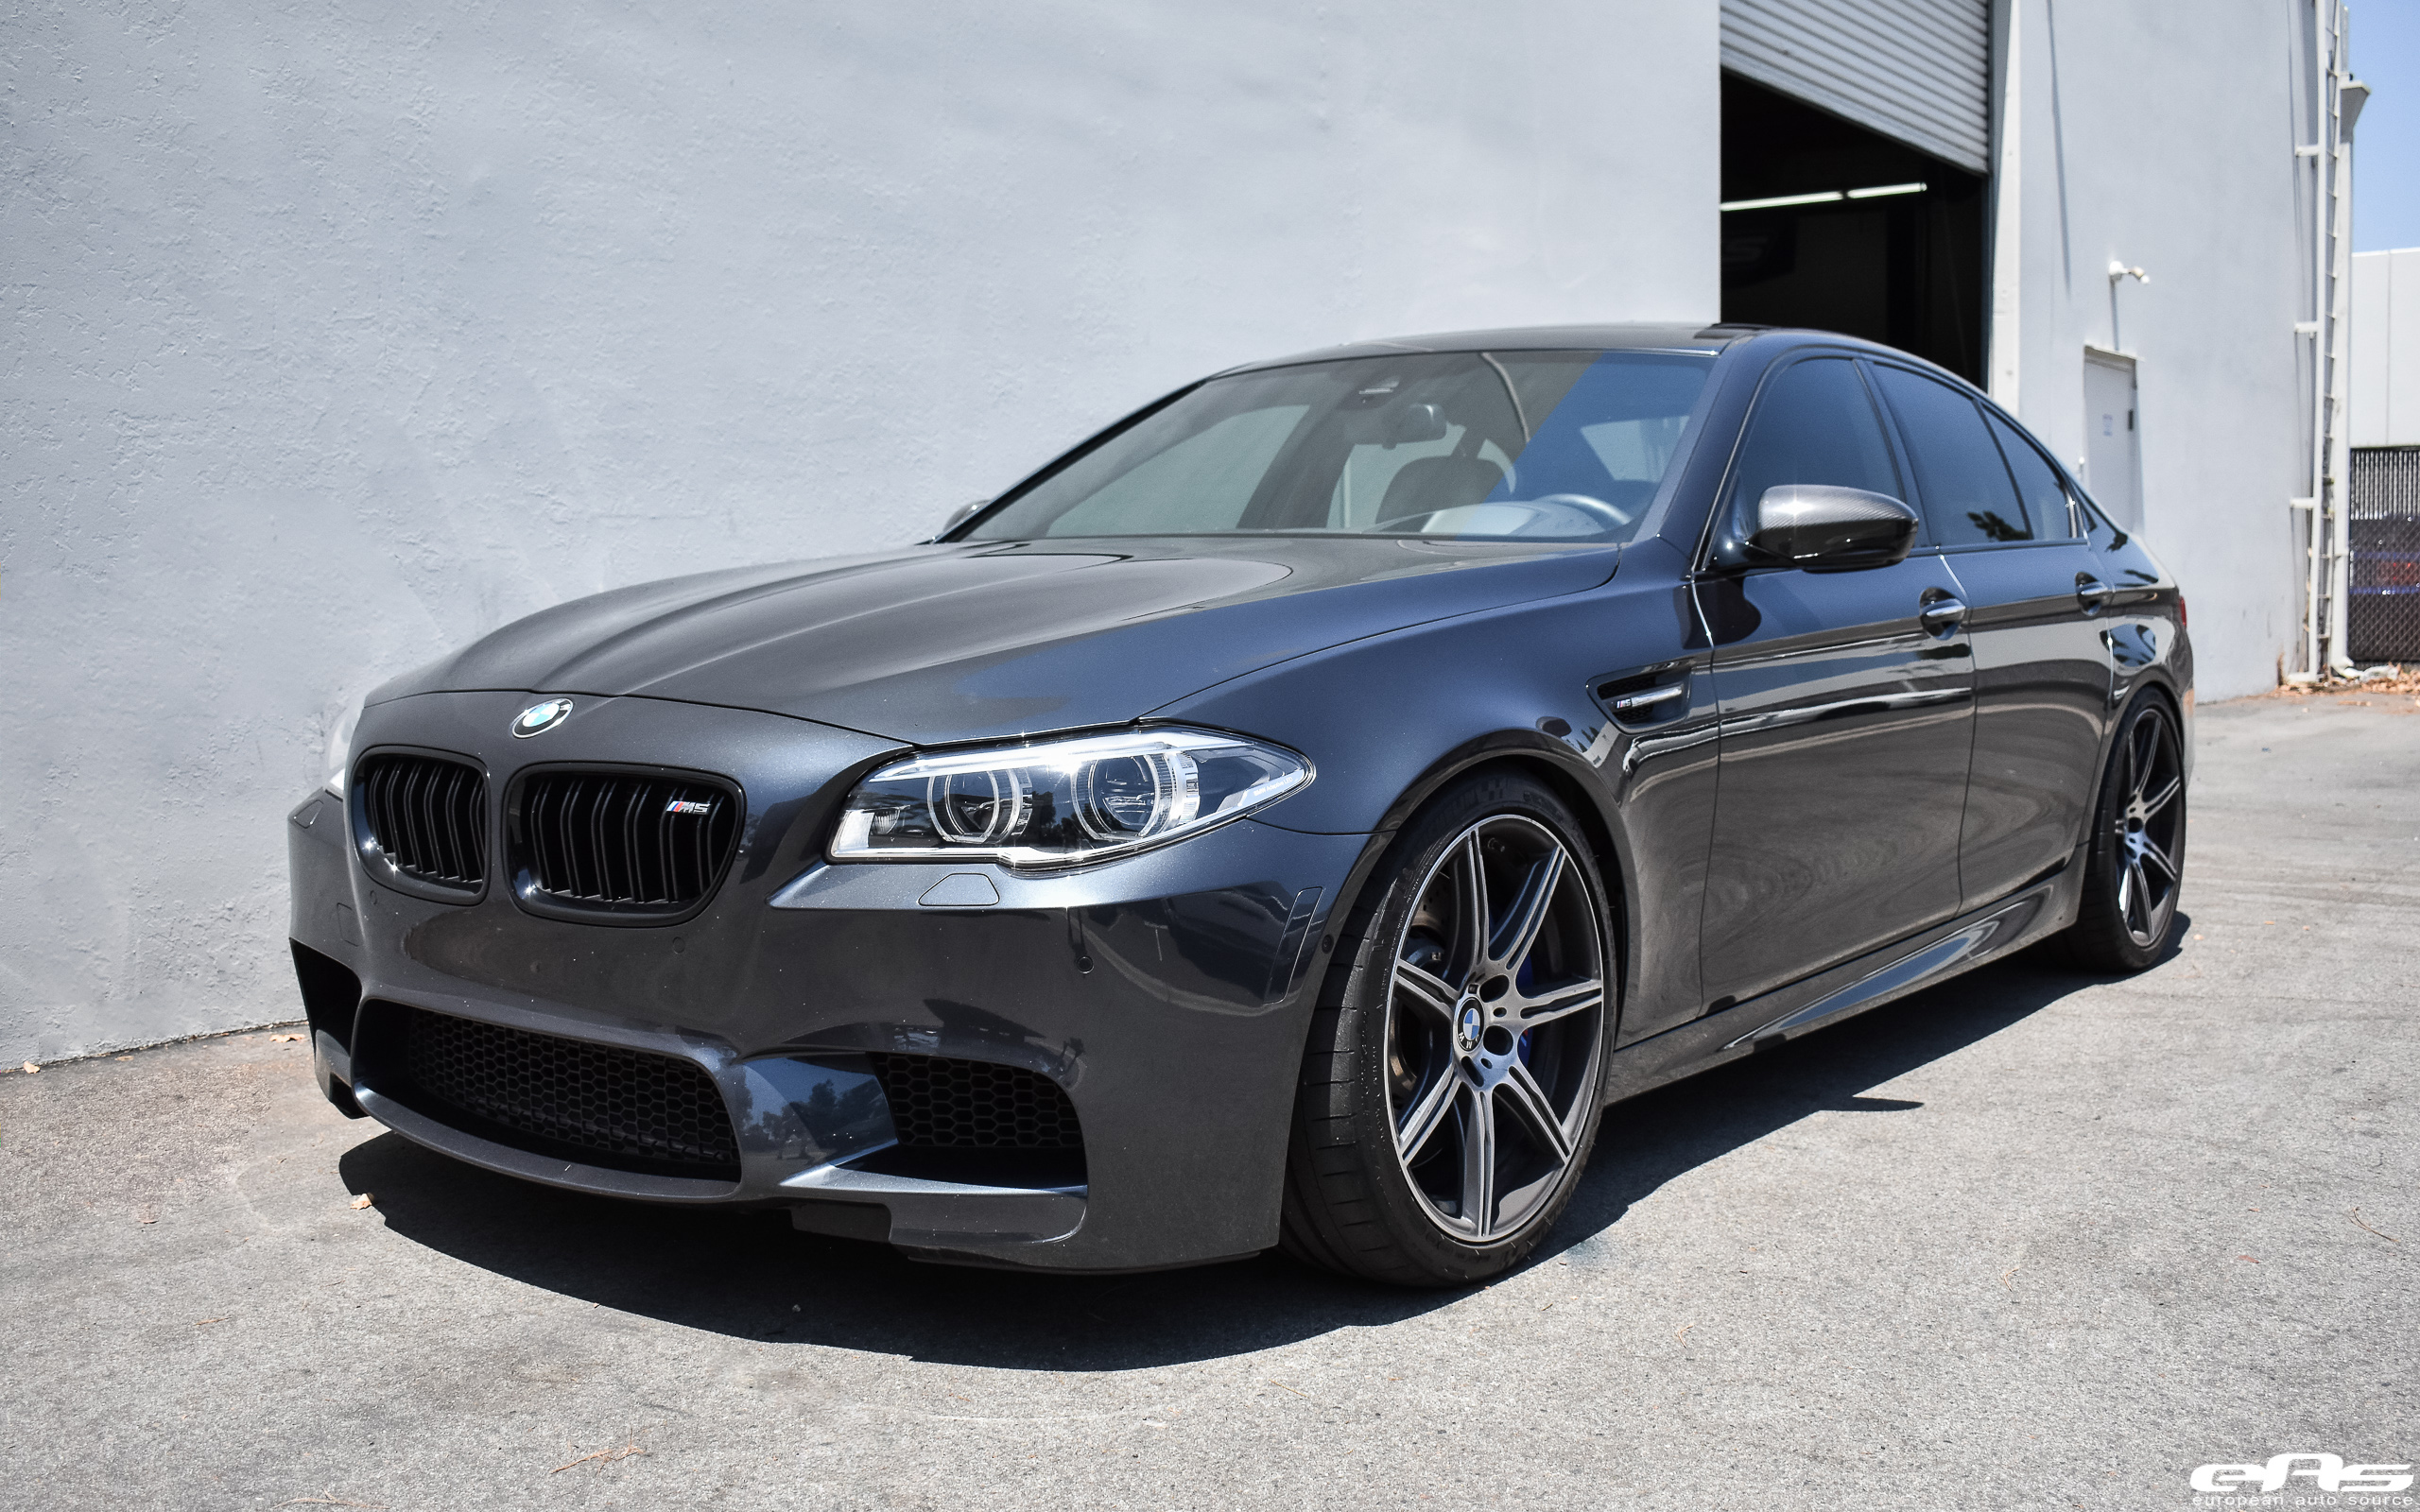 Singapore Gray Bmw M5 Gets An Eisenmann Exhaust System